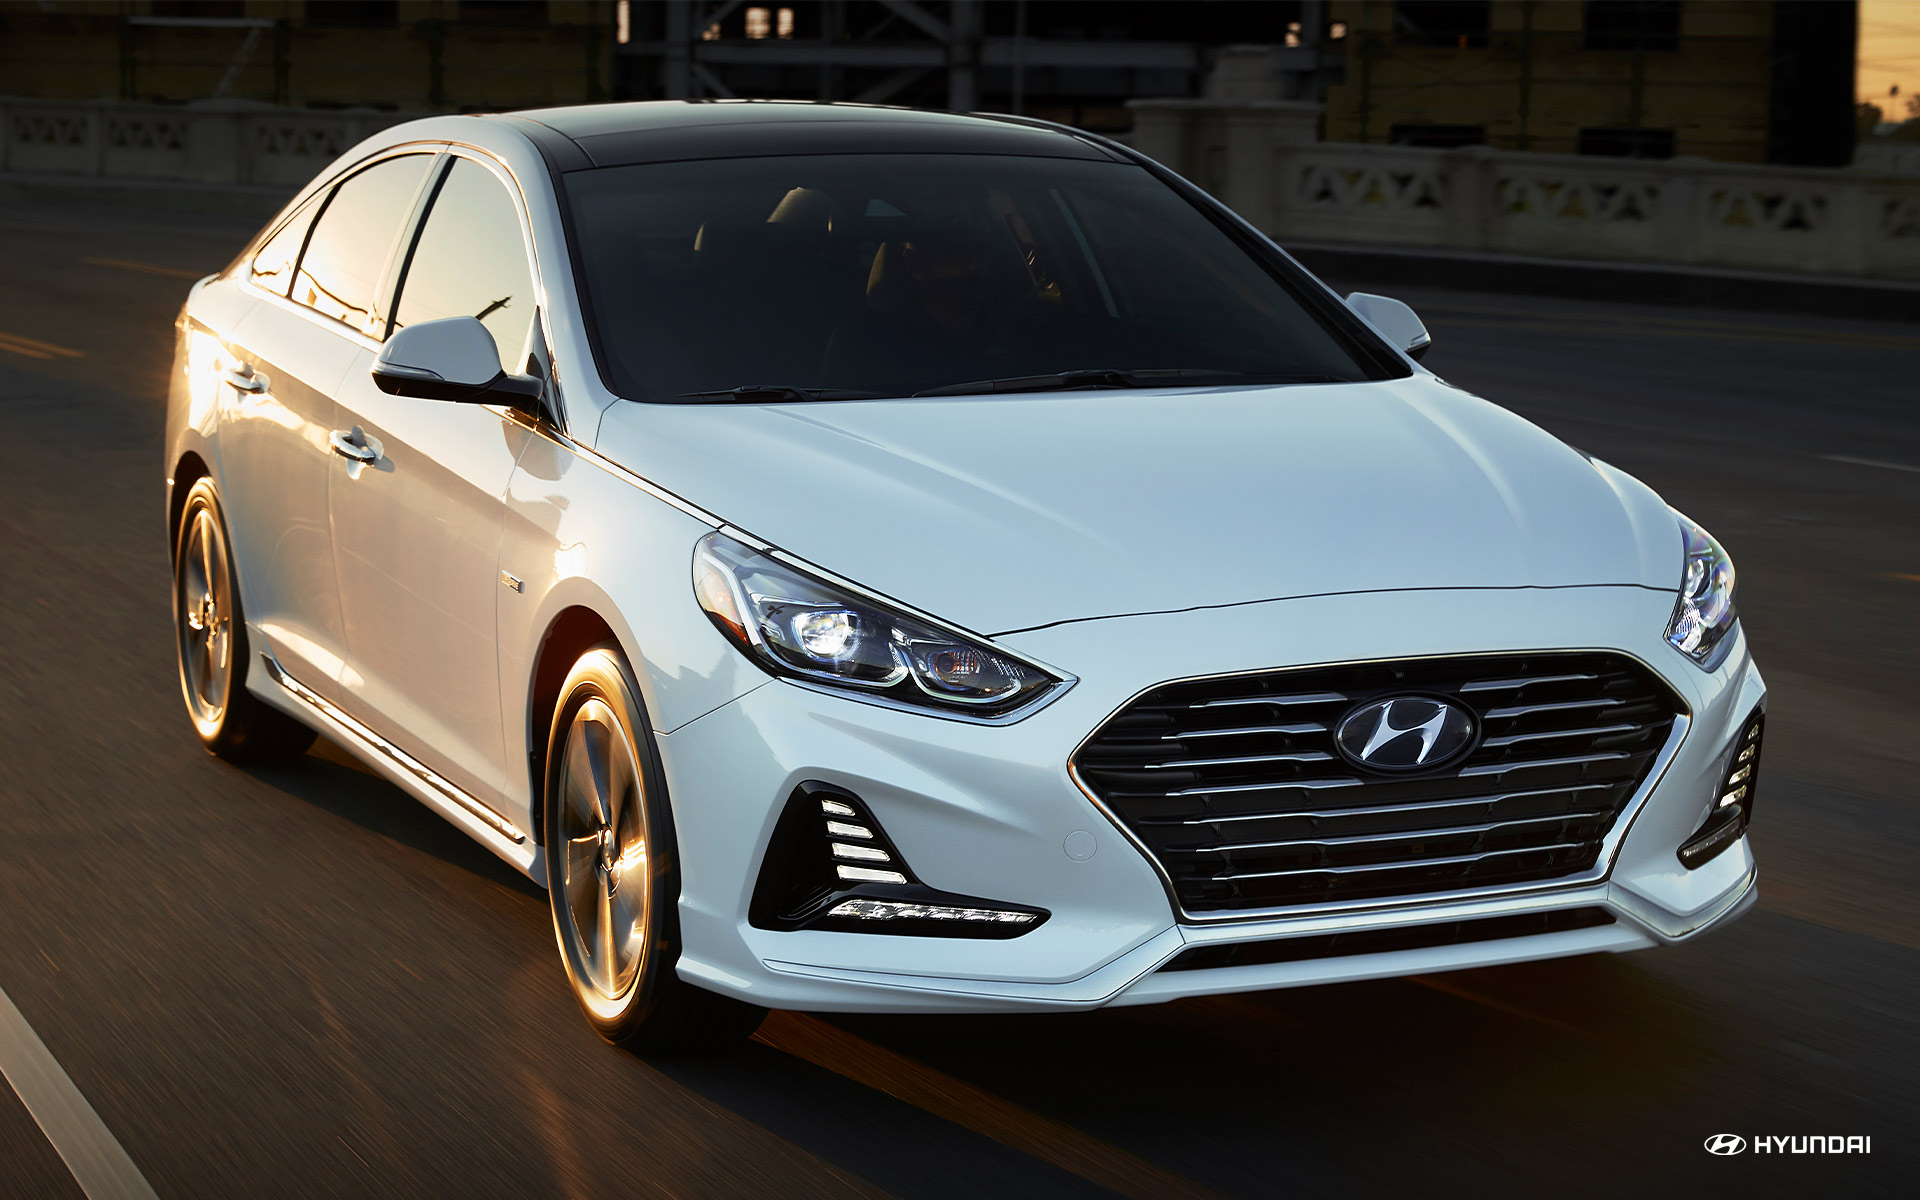 Picture of 2018 Hyundai Sonata Hybrid White Exterior Front and Side View